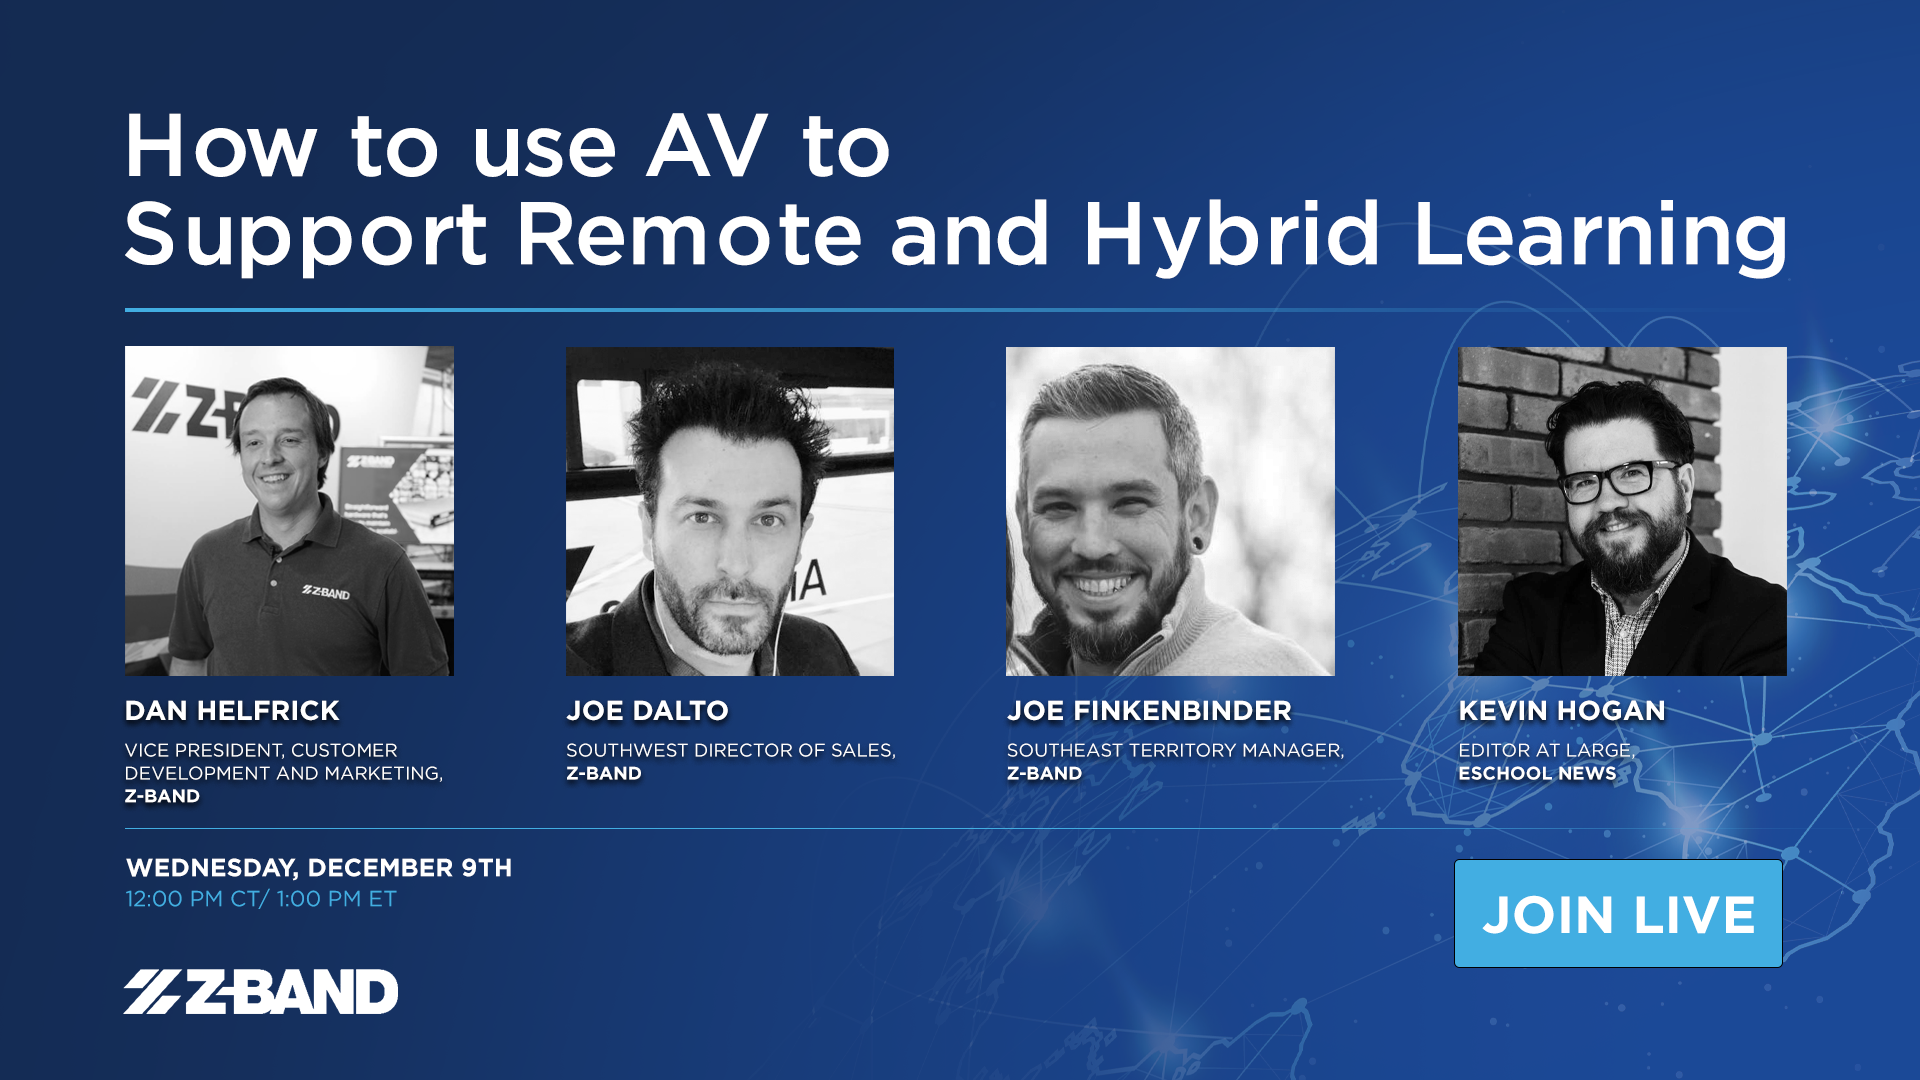 The How to Use AV to Support Remote and Hybrid Learning